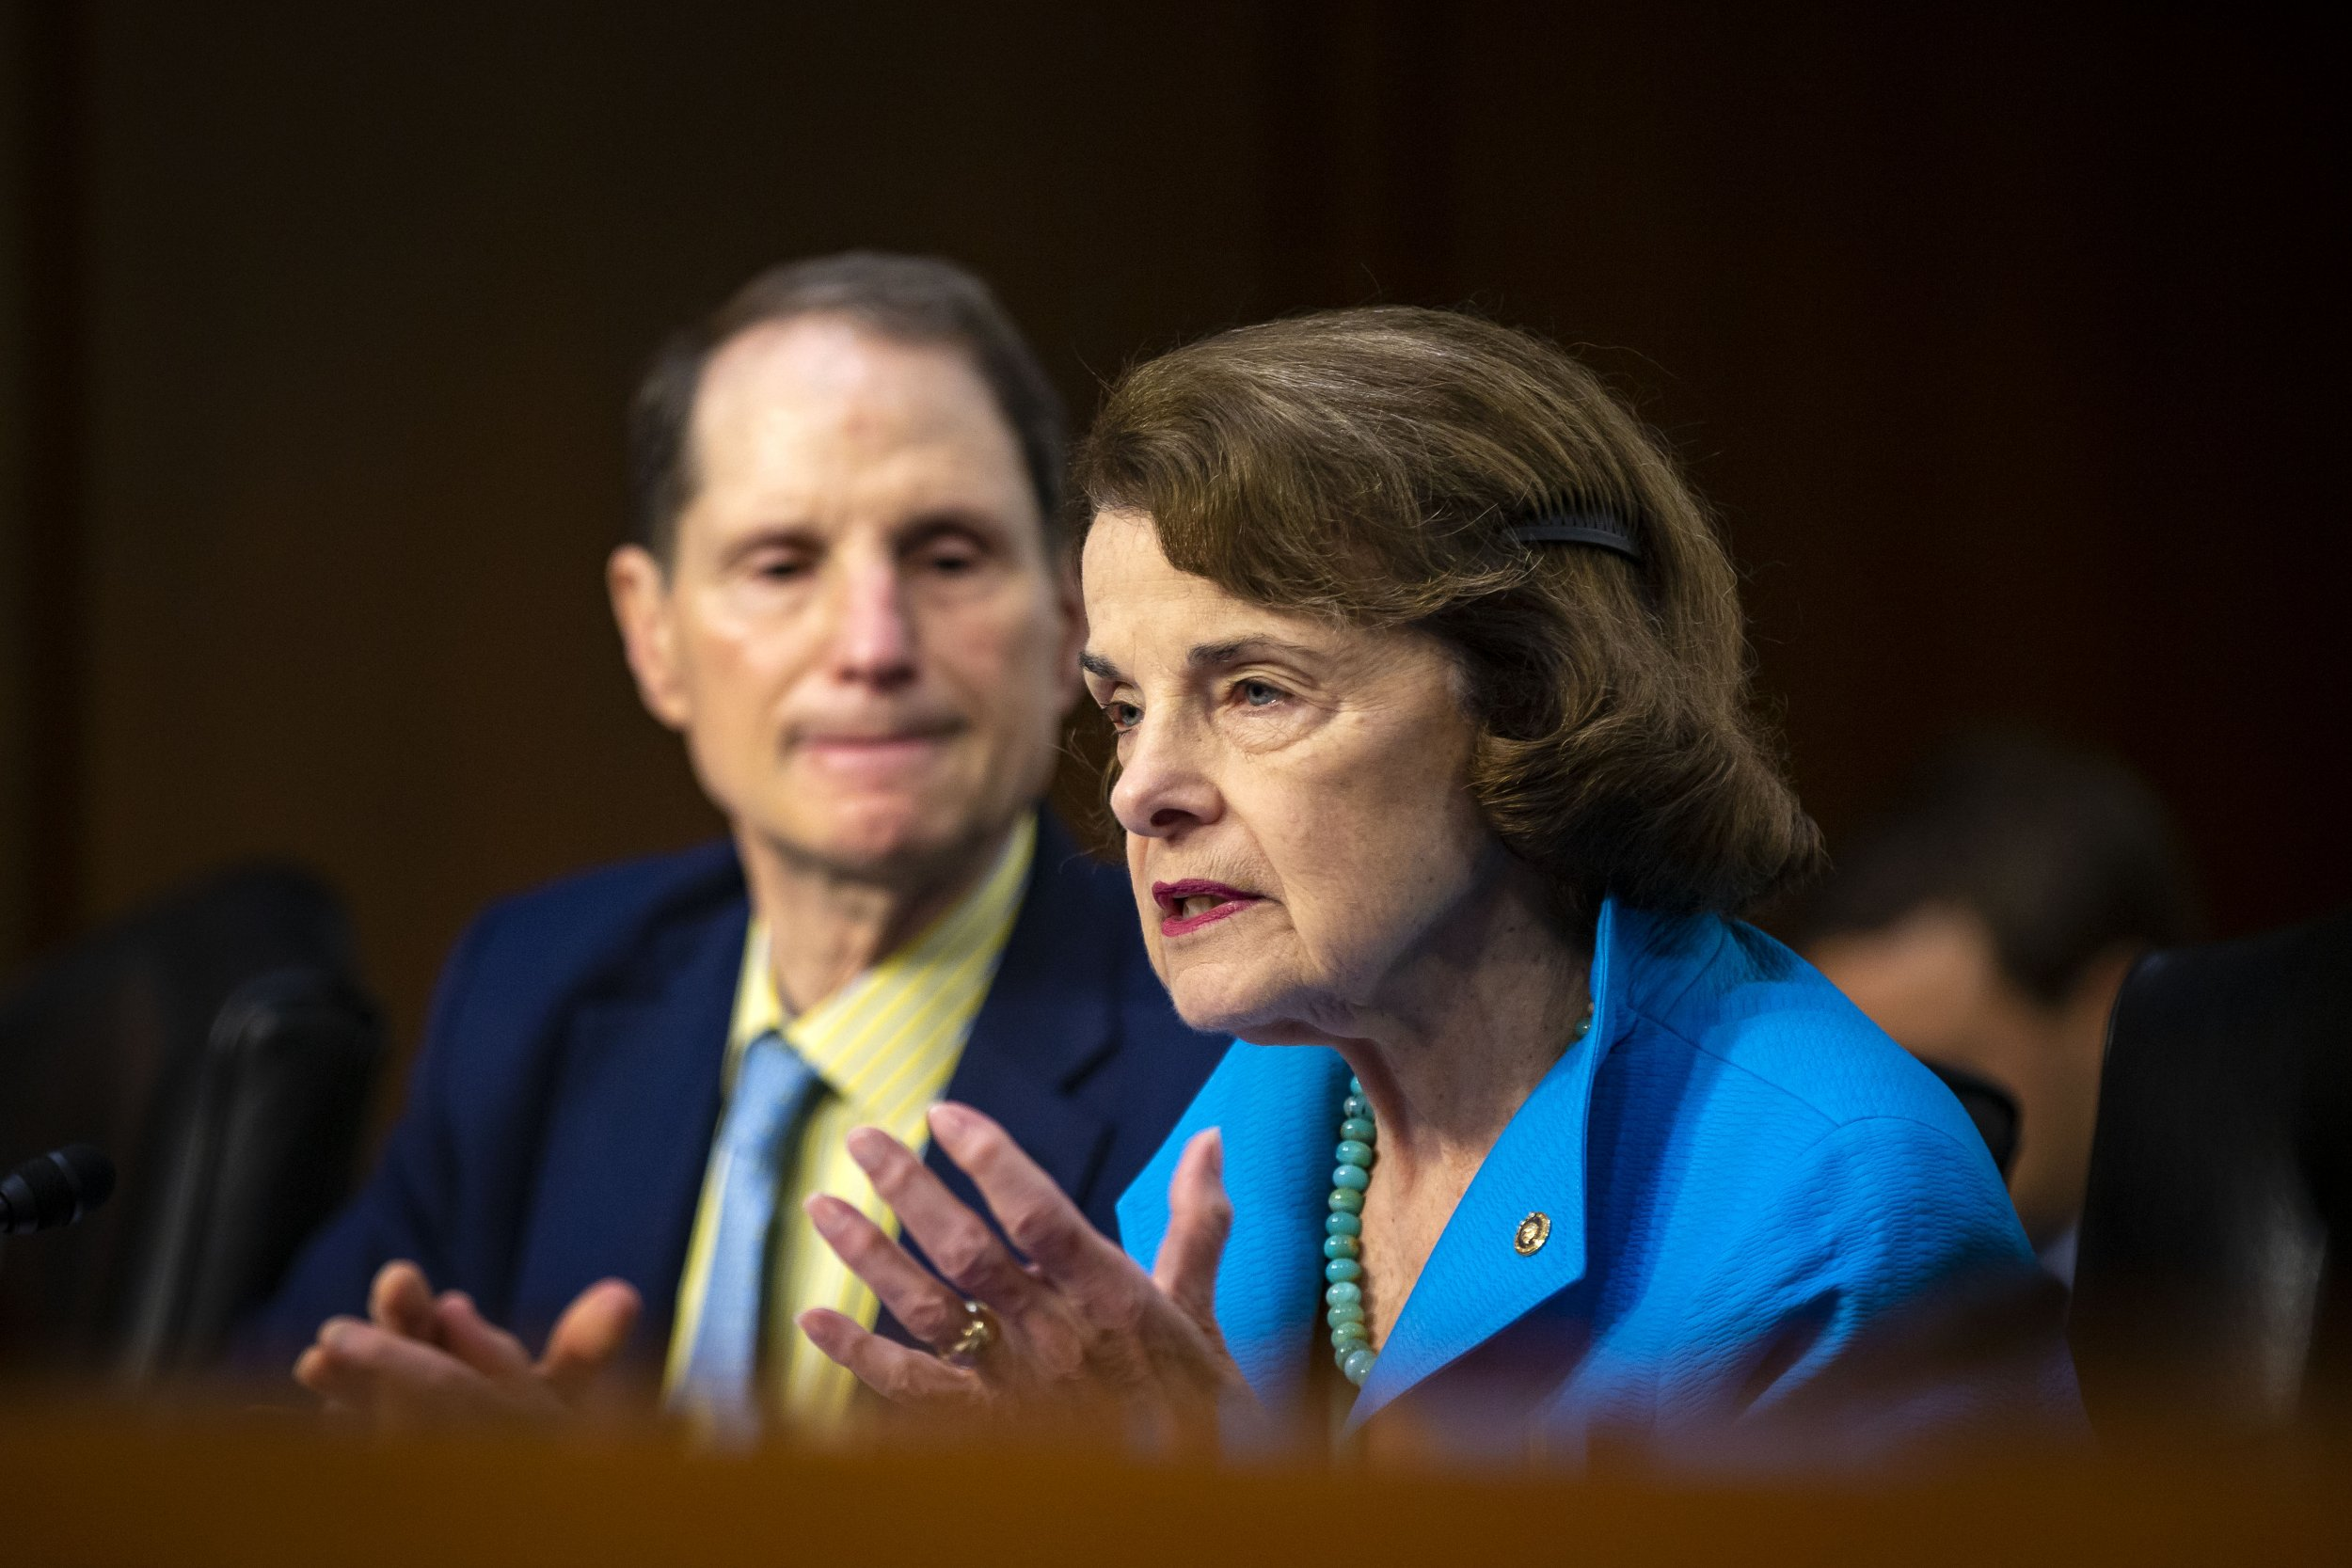 Democrats, Dianne Feinstein, contempt Donald Trump Jr